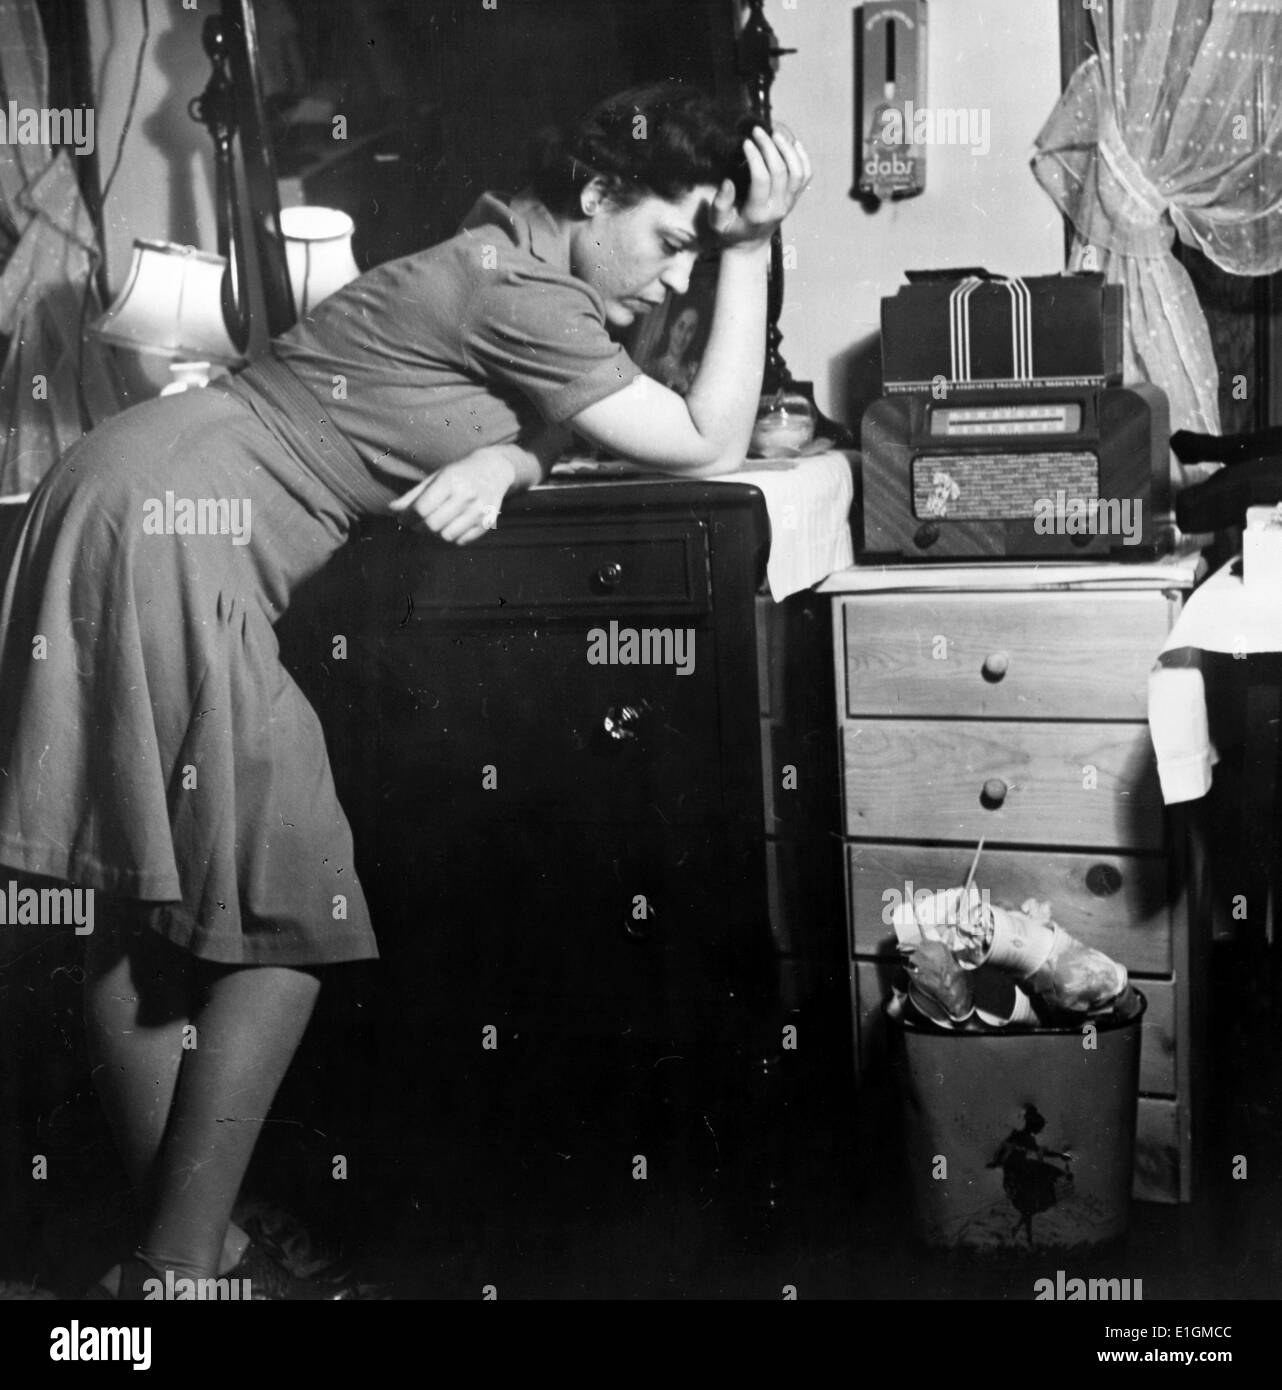 Photograph of a woman listening to a murder mystery on the radio in a boarding house. Dated 1943 Stock Photo